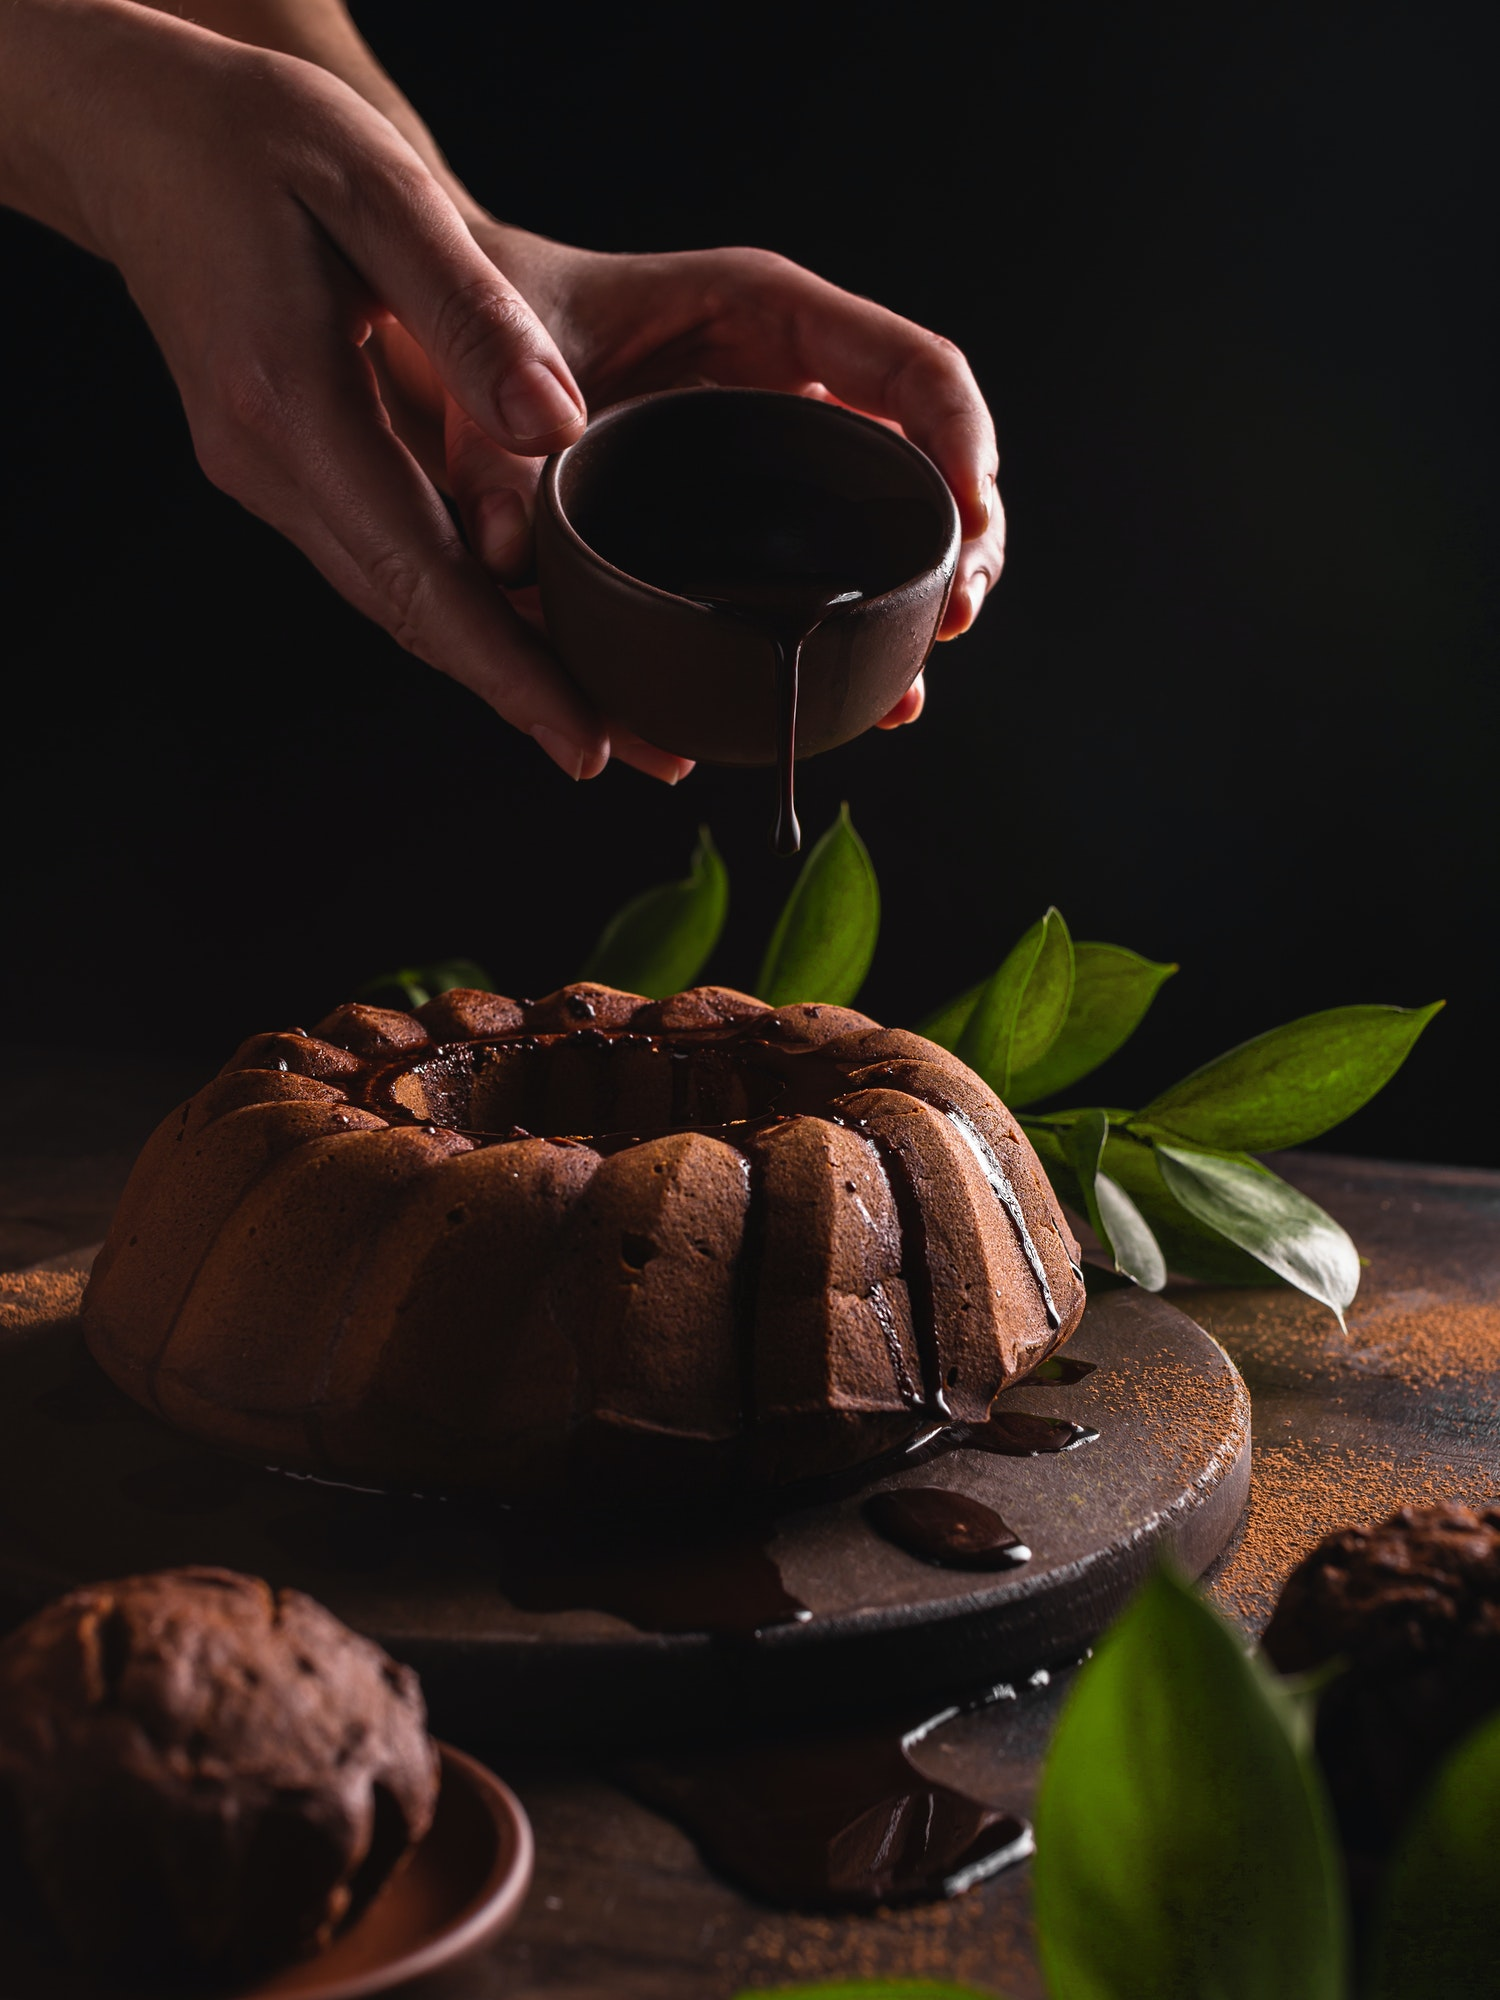 Woman pouring chocolate on a chocolate cake